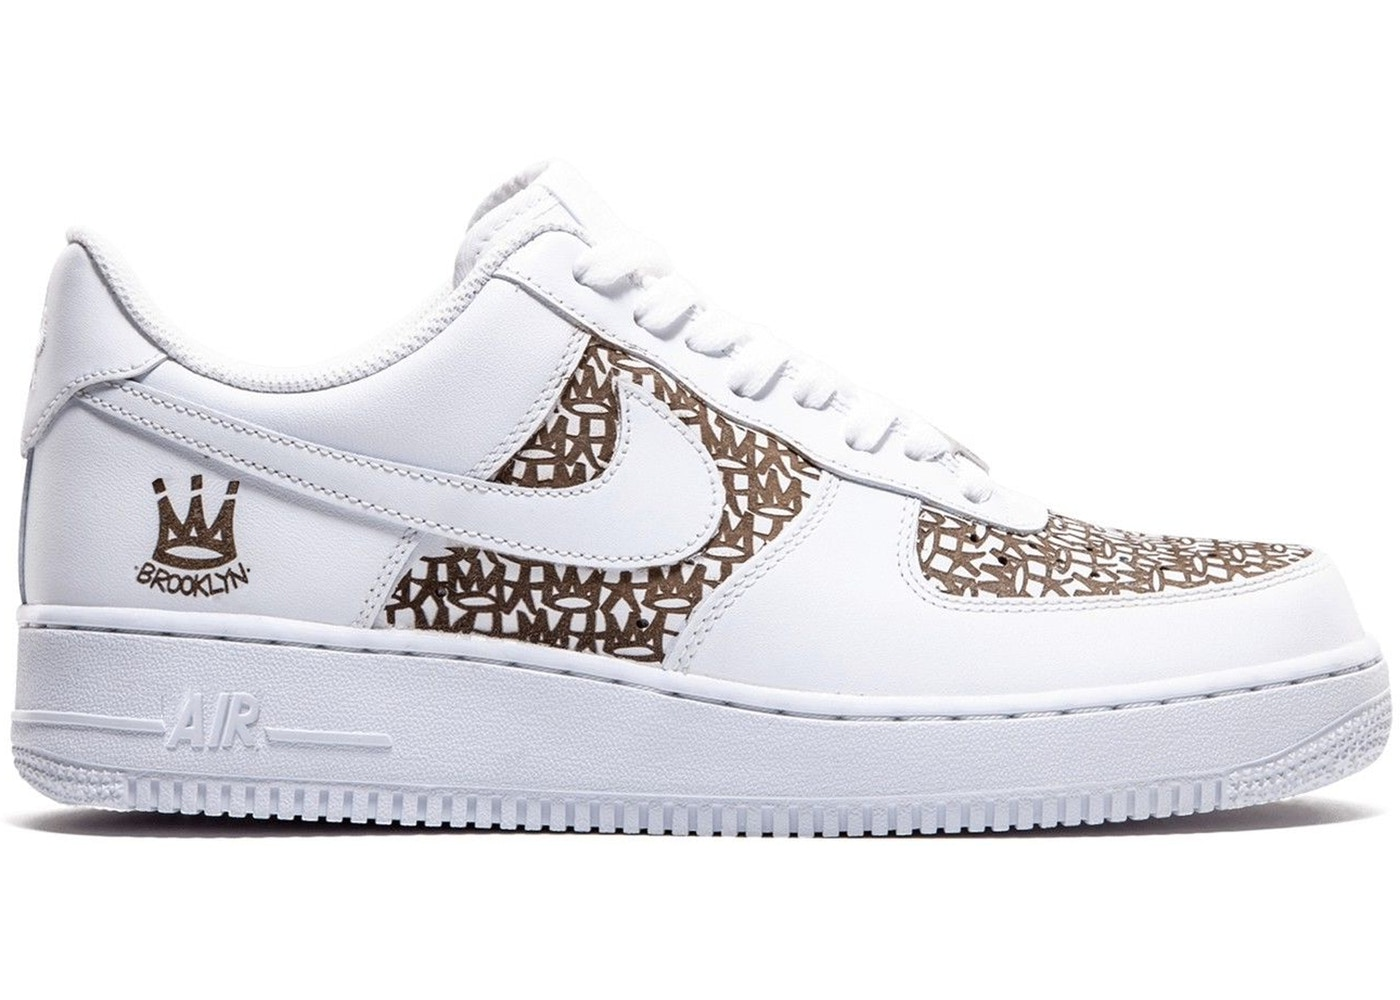 5285128cae33 Air Force 1 Low Haze NYC Laser - 061413-718